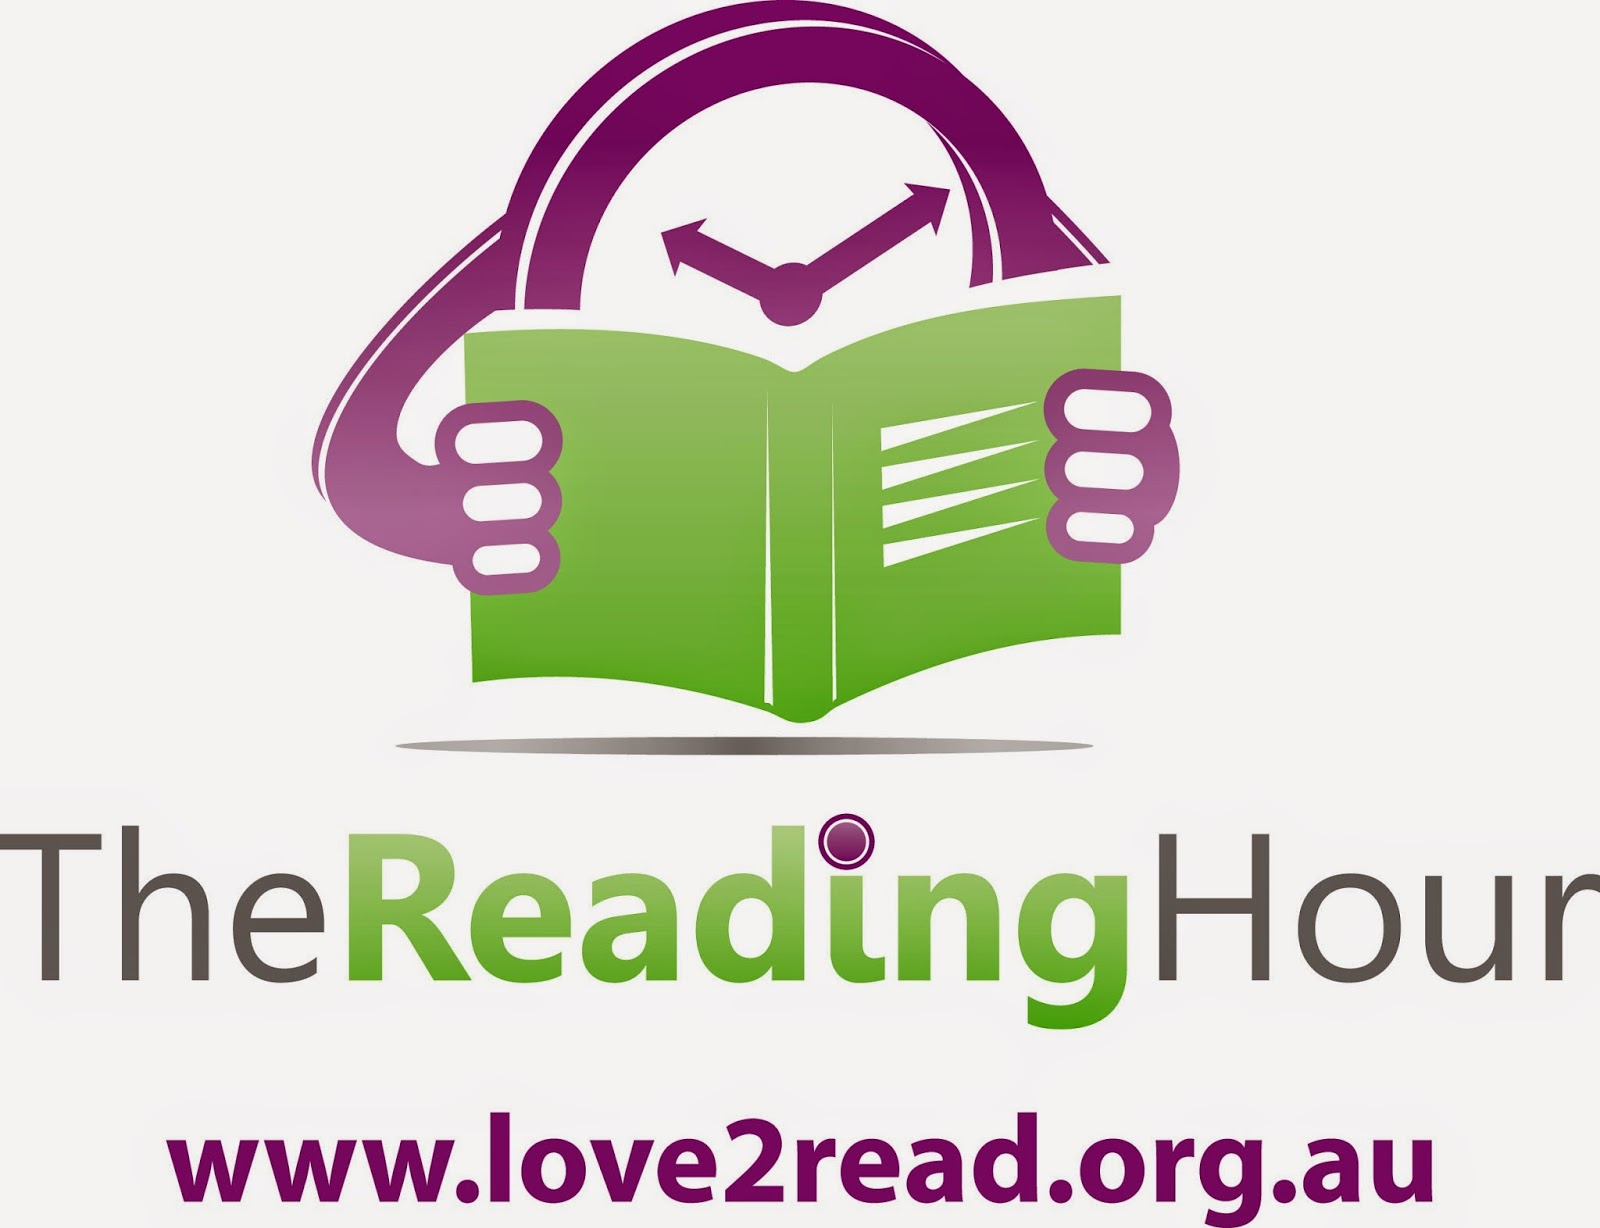 http://www.love2read.org.au/